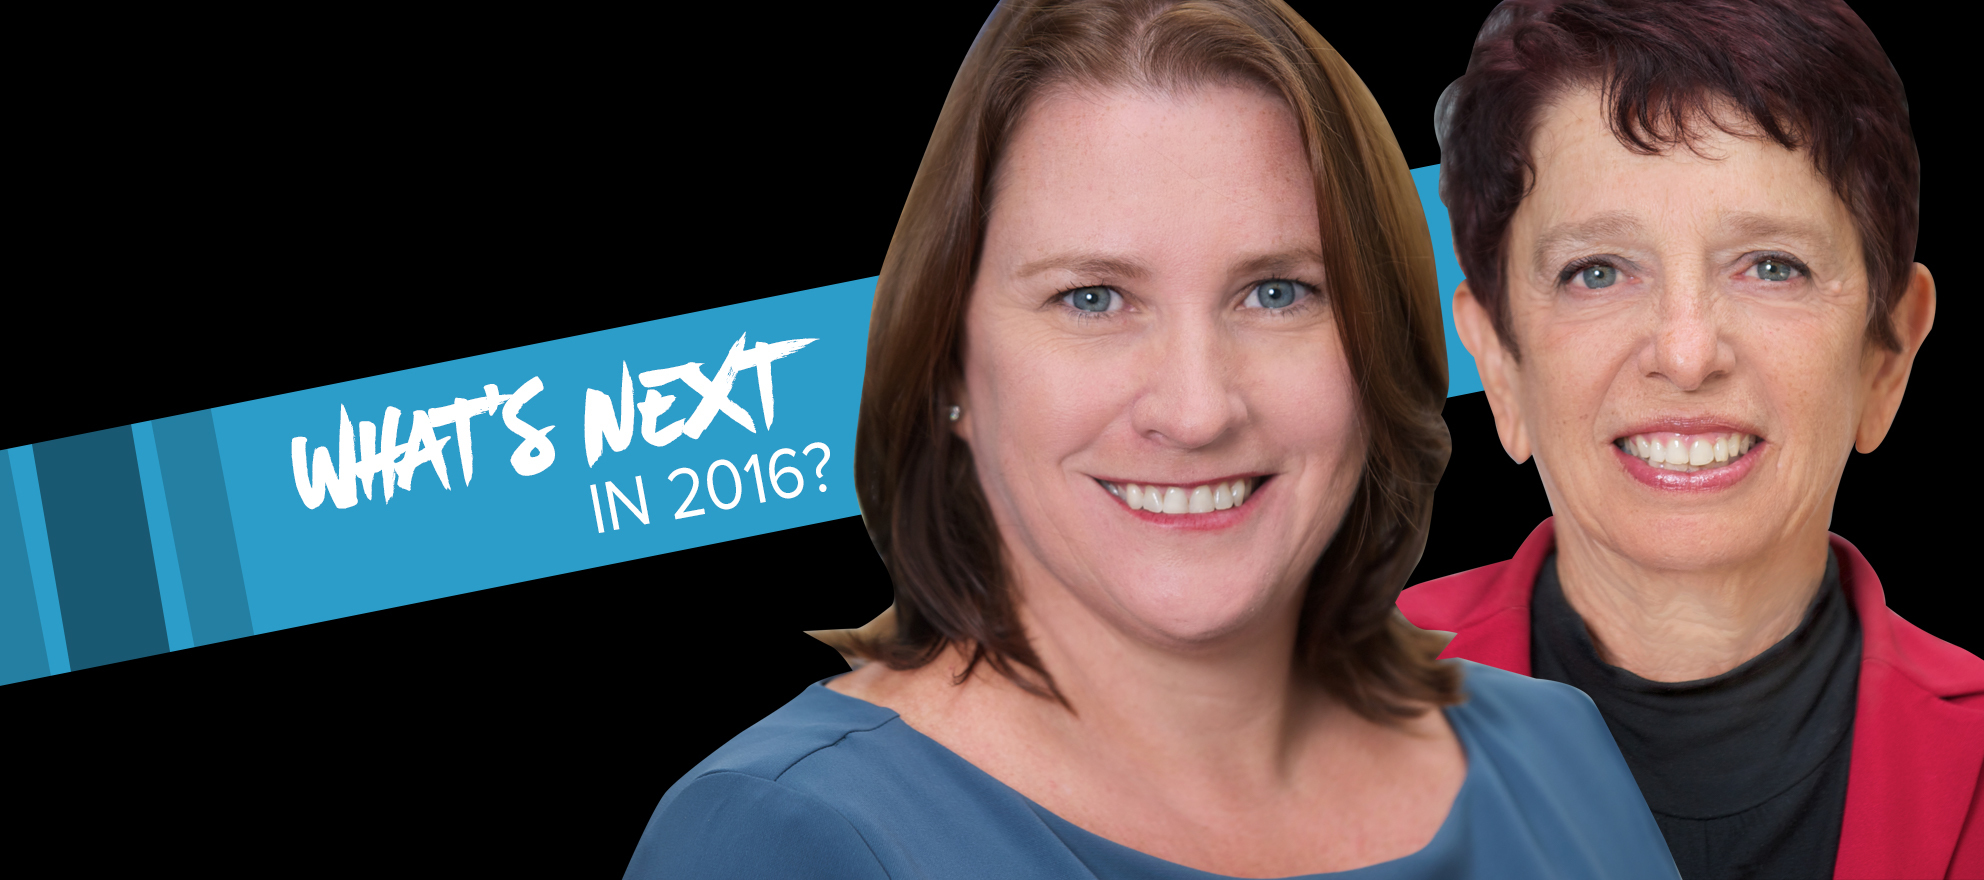 Klara Madlin and Ann Ferguson on what's next in 2016